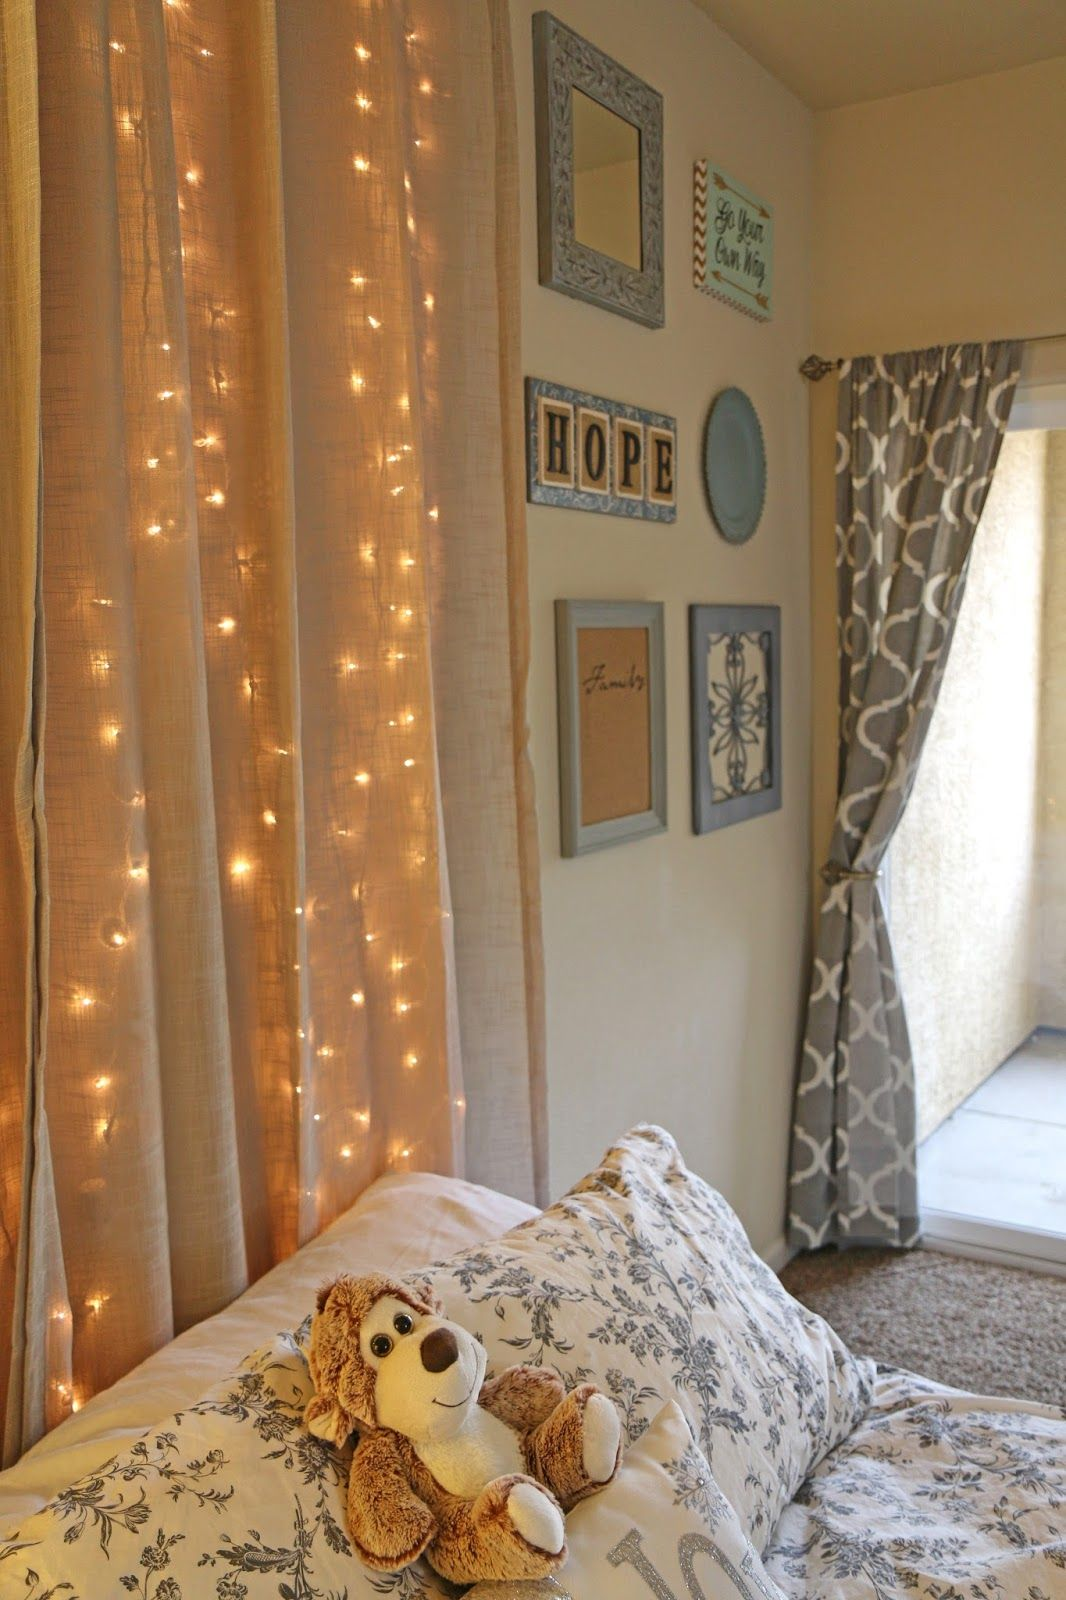 Window headboard ideas  diy light up headboard ideas for string light home decor  home